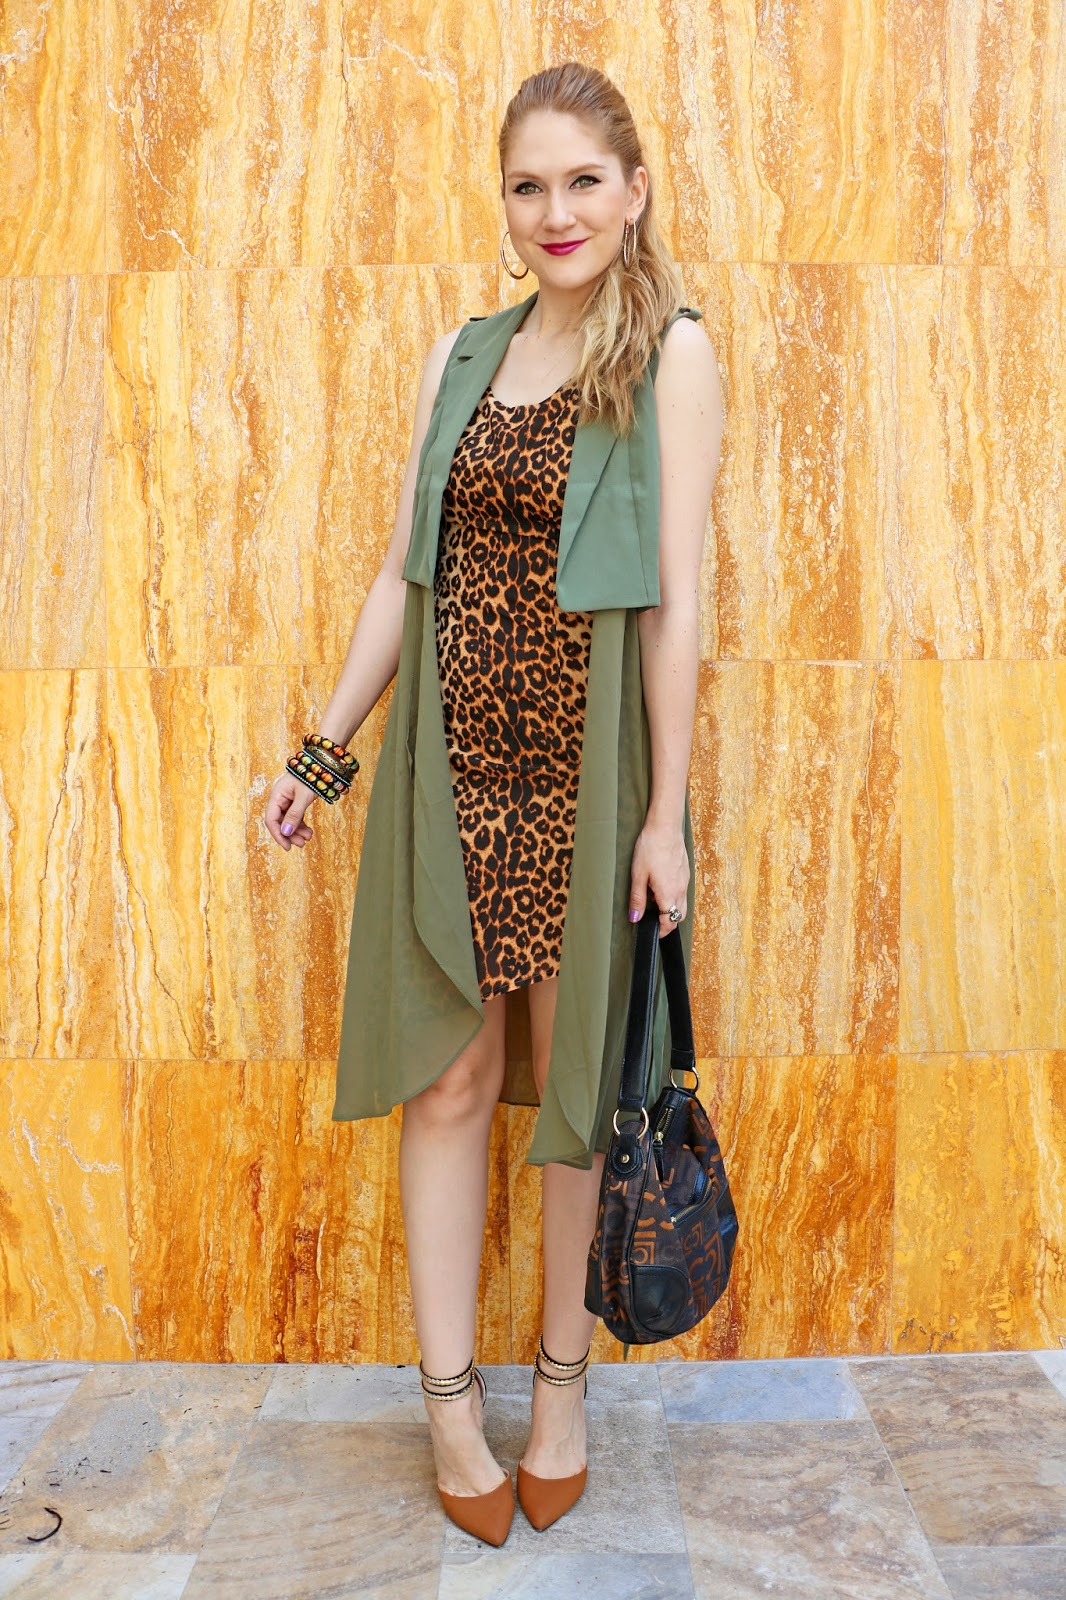 This army green jacket looks great paired with leopard print